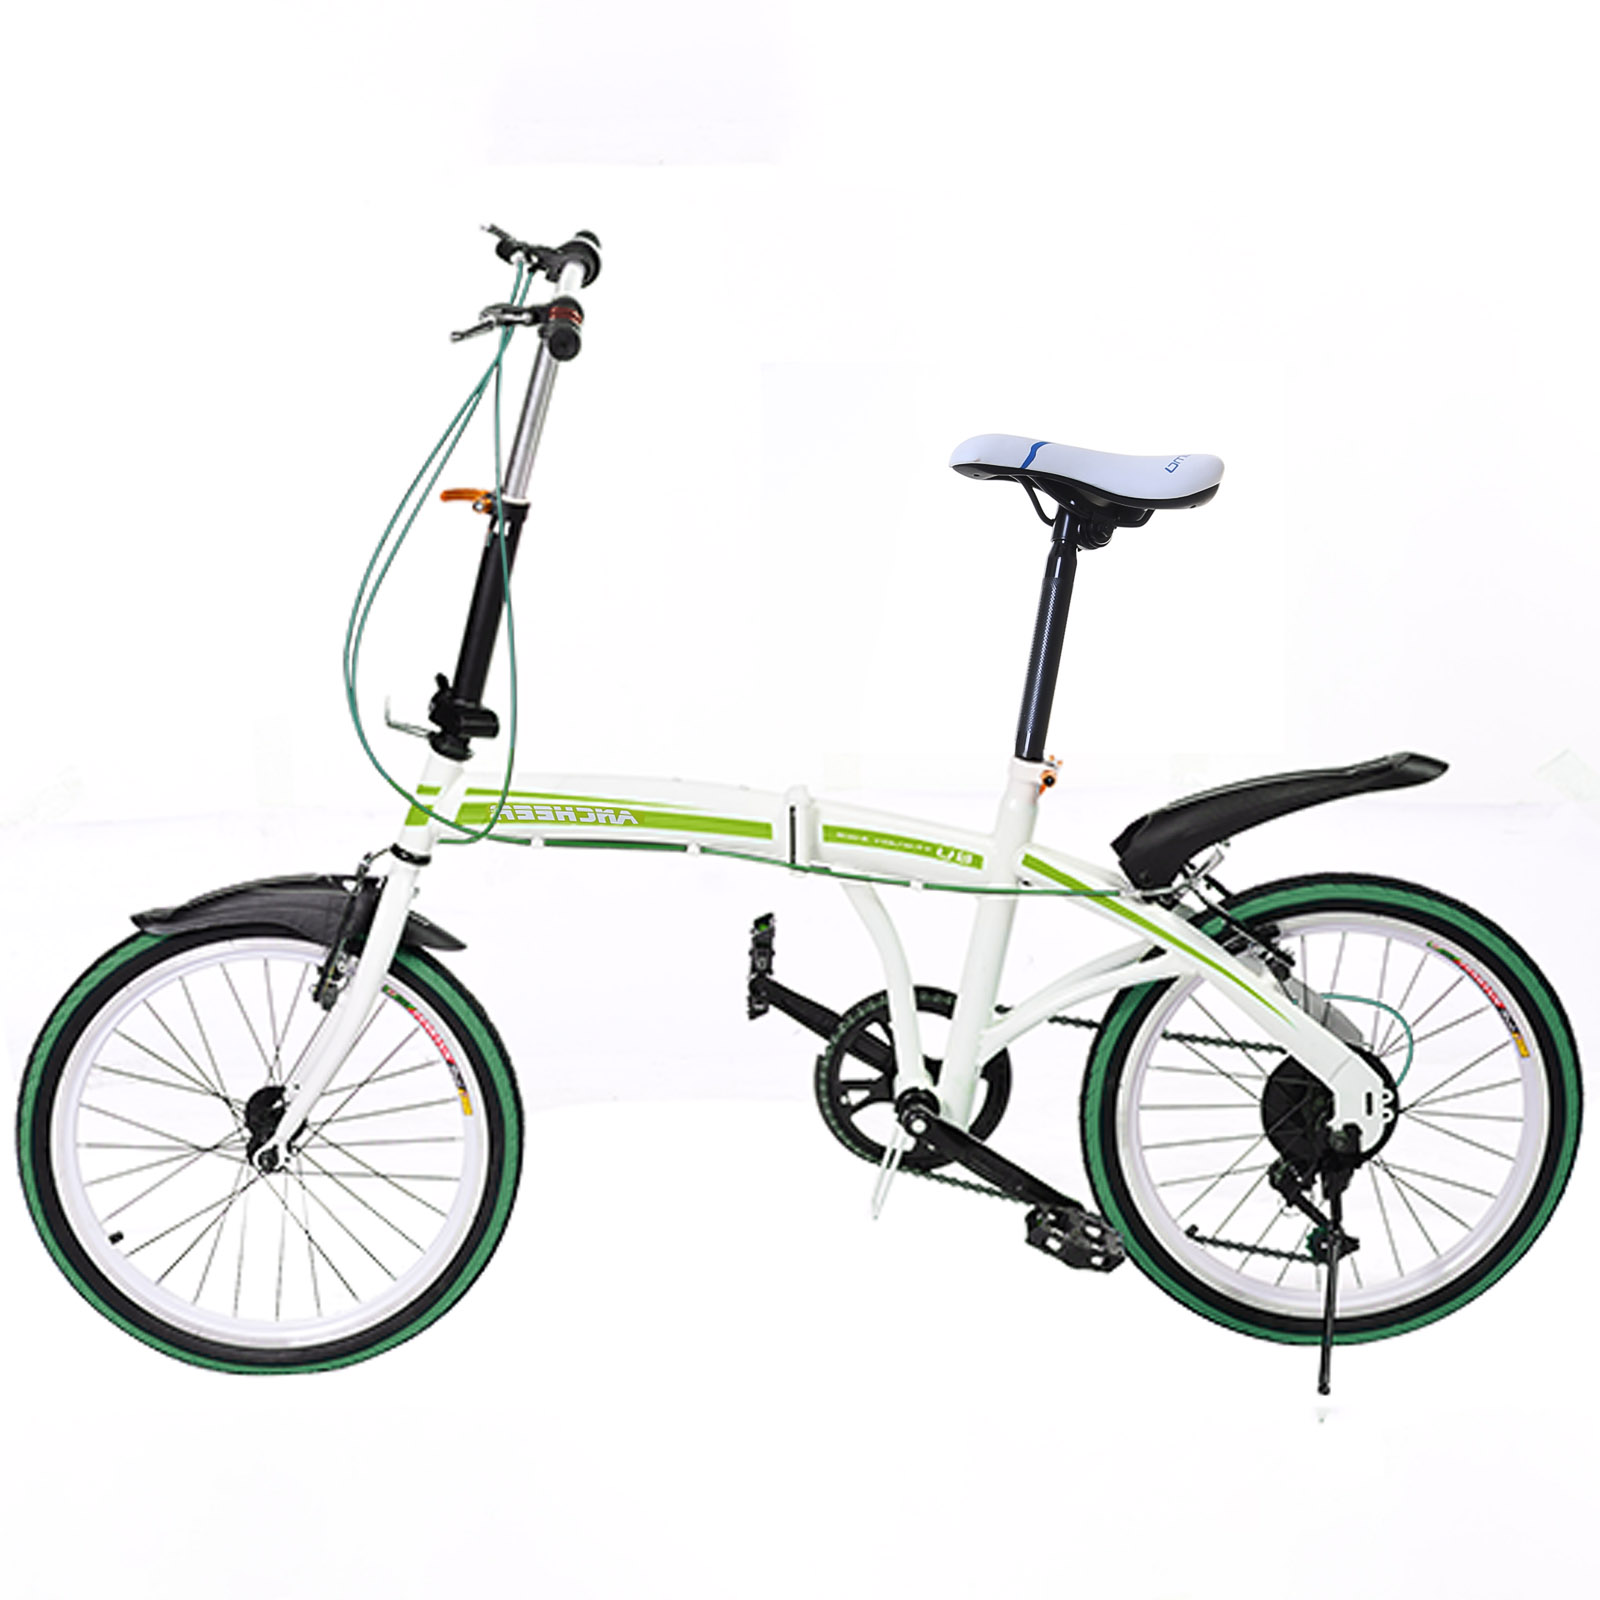 Elifine 20 inch Lightweight Portable Folding Bike 6-Speed Road Bicycle Cycling Adult Women Adjustable Bicycle Foldable Bicicleta(China)